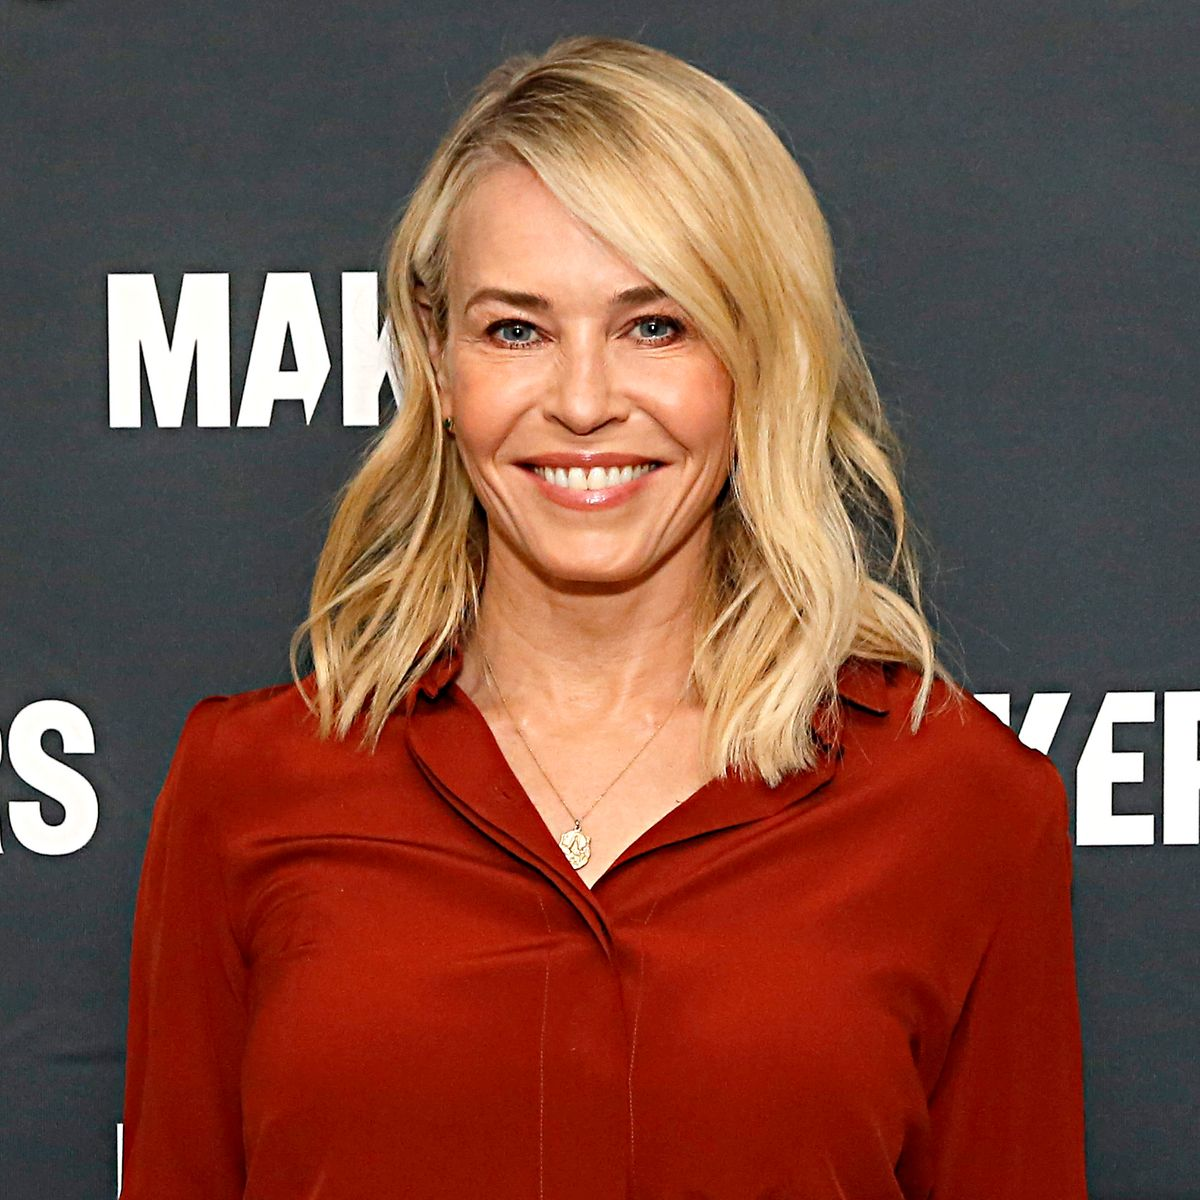 Chelsea Handler 50 Cent Feud On Twitter Trump Support Taxes